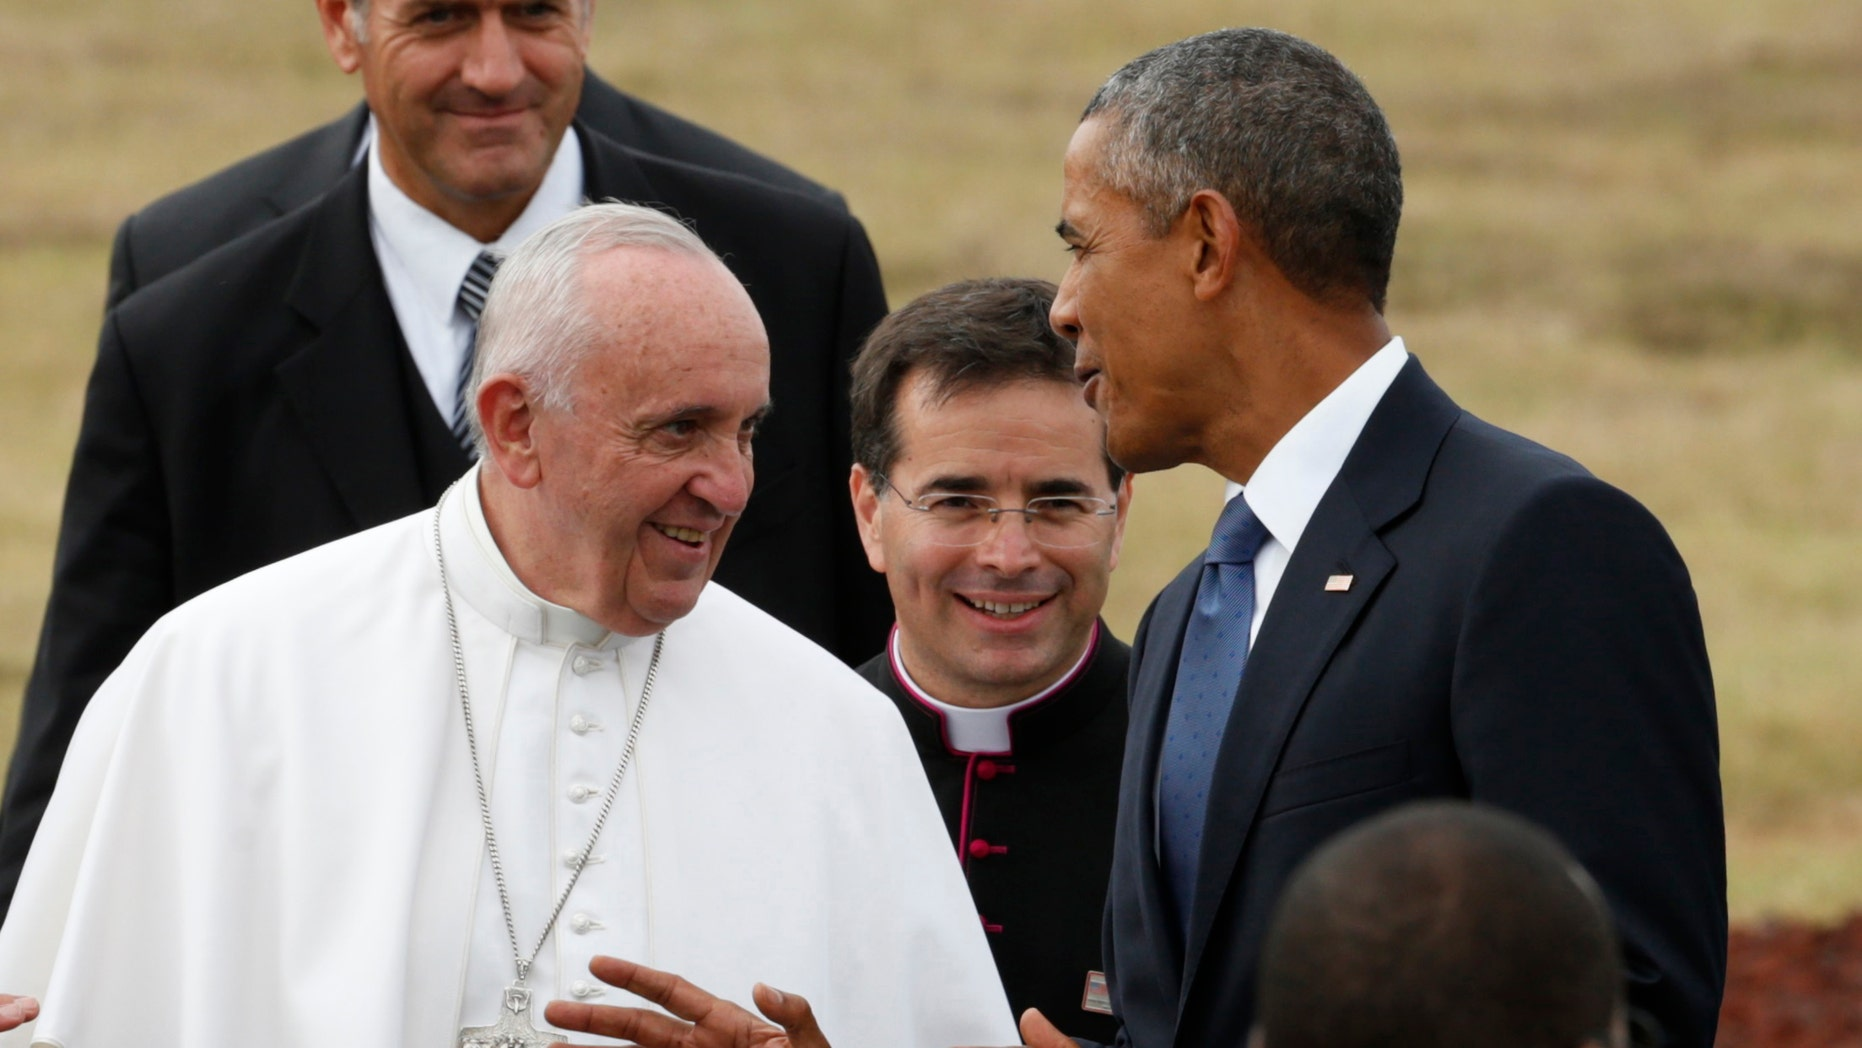 U.S. President Barack Obama chats with Pope Francis as he welcomes him upon his arrival at Joint Base Andrews outside Washington Sept. 22, 2015.